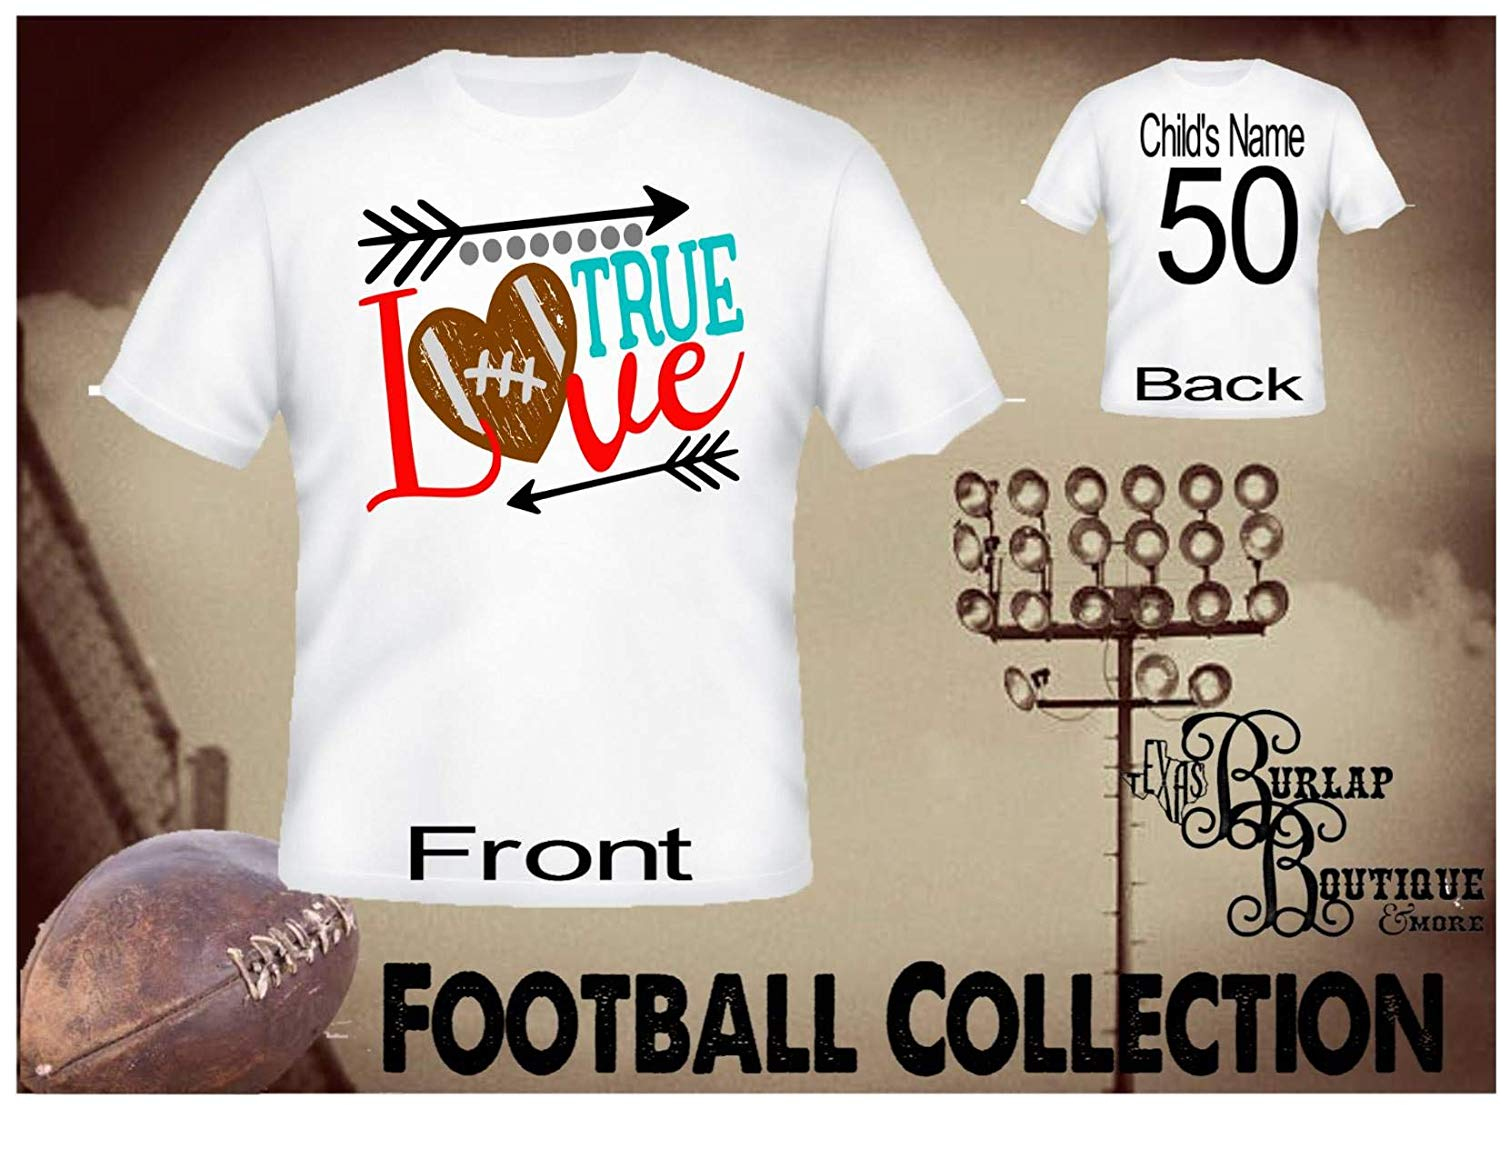 Handmade Personalized Football Shirt, True Love Football, Tee, T - Shirt, Tshirt, Football Quotes, Kids, Girls, Adult, Sizes XS - 3XL Several colors